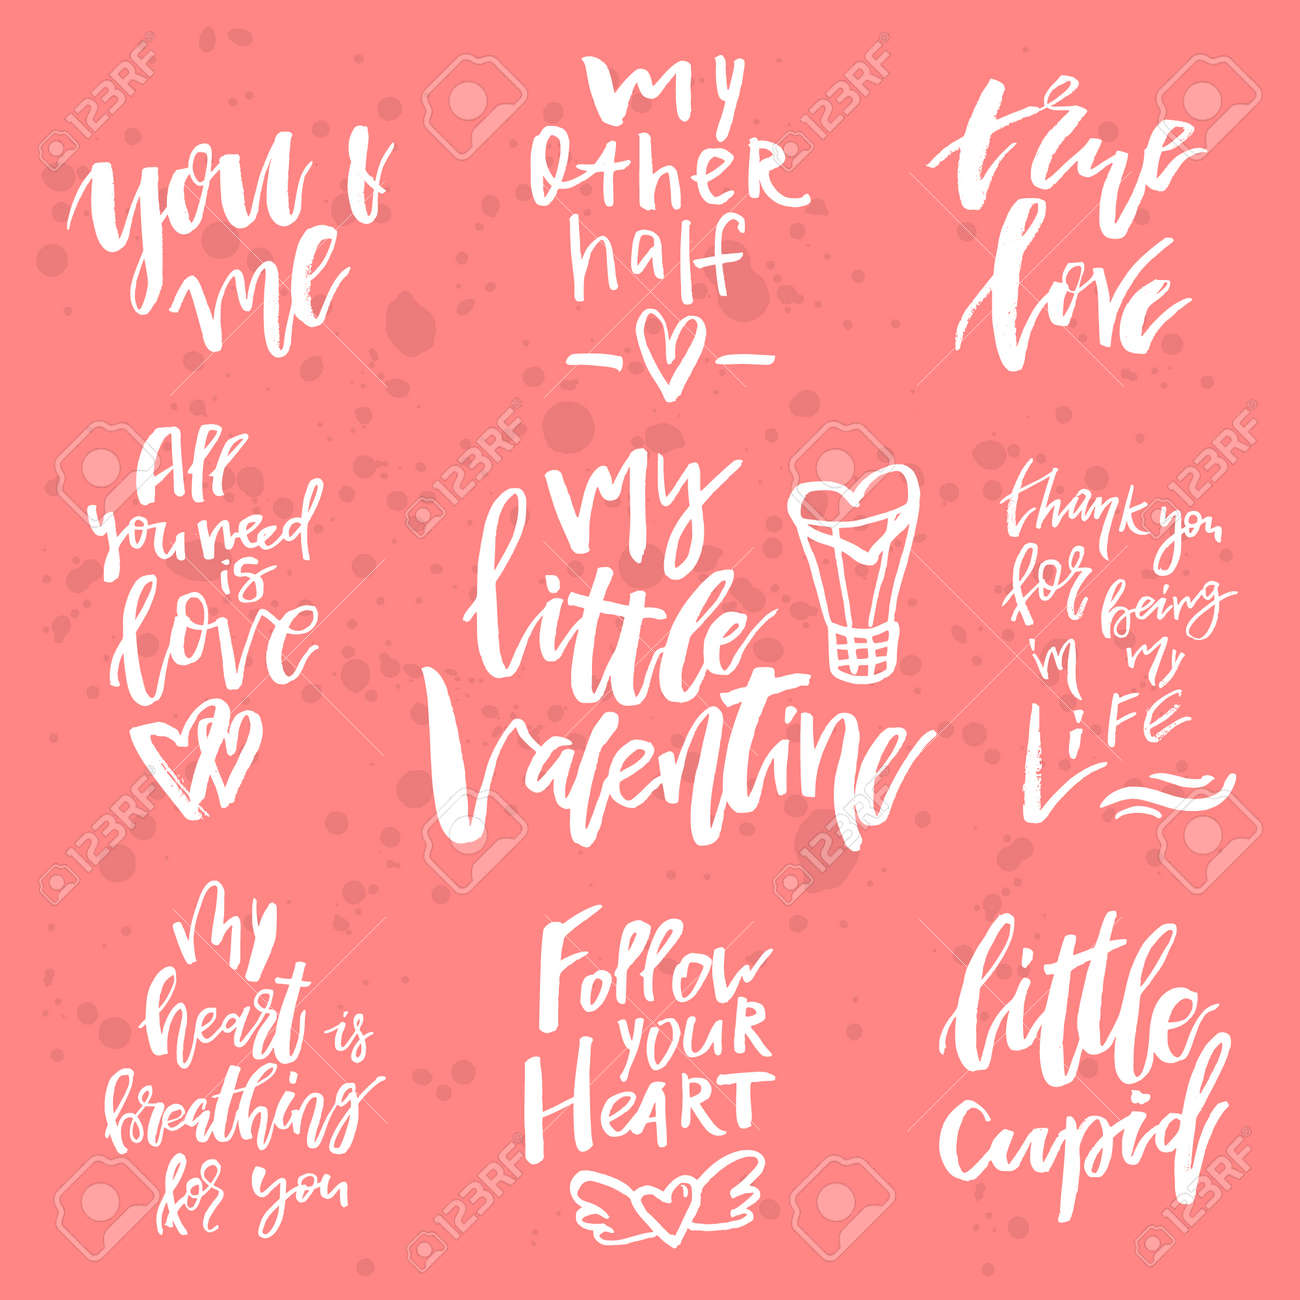 set of valentines day romantic handwritten quotes and slogans good